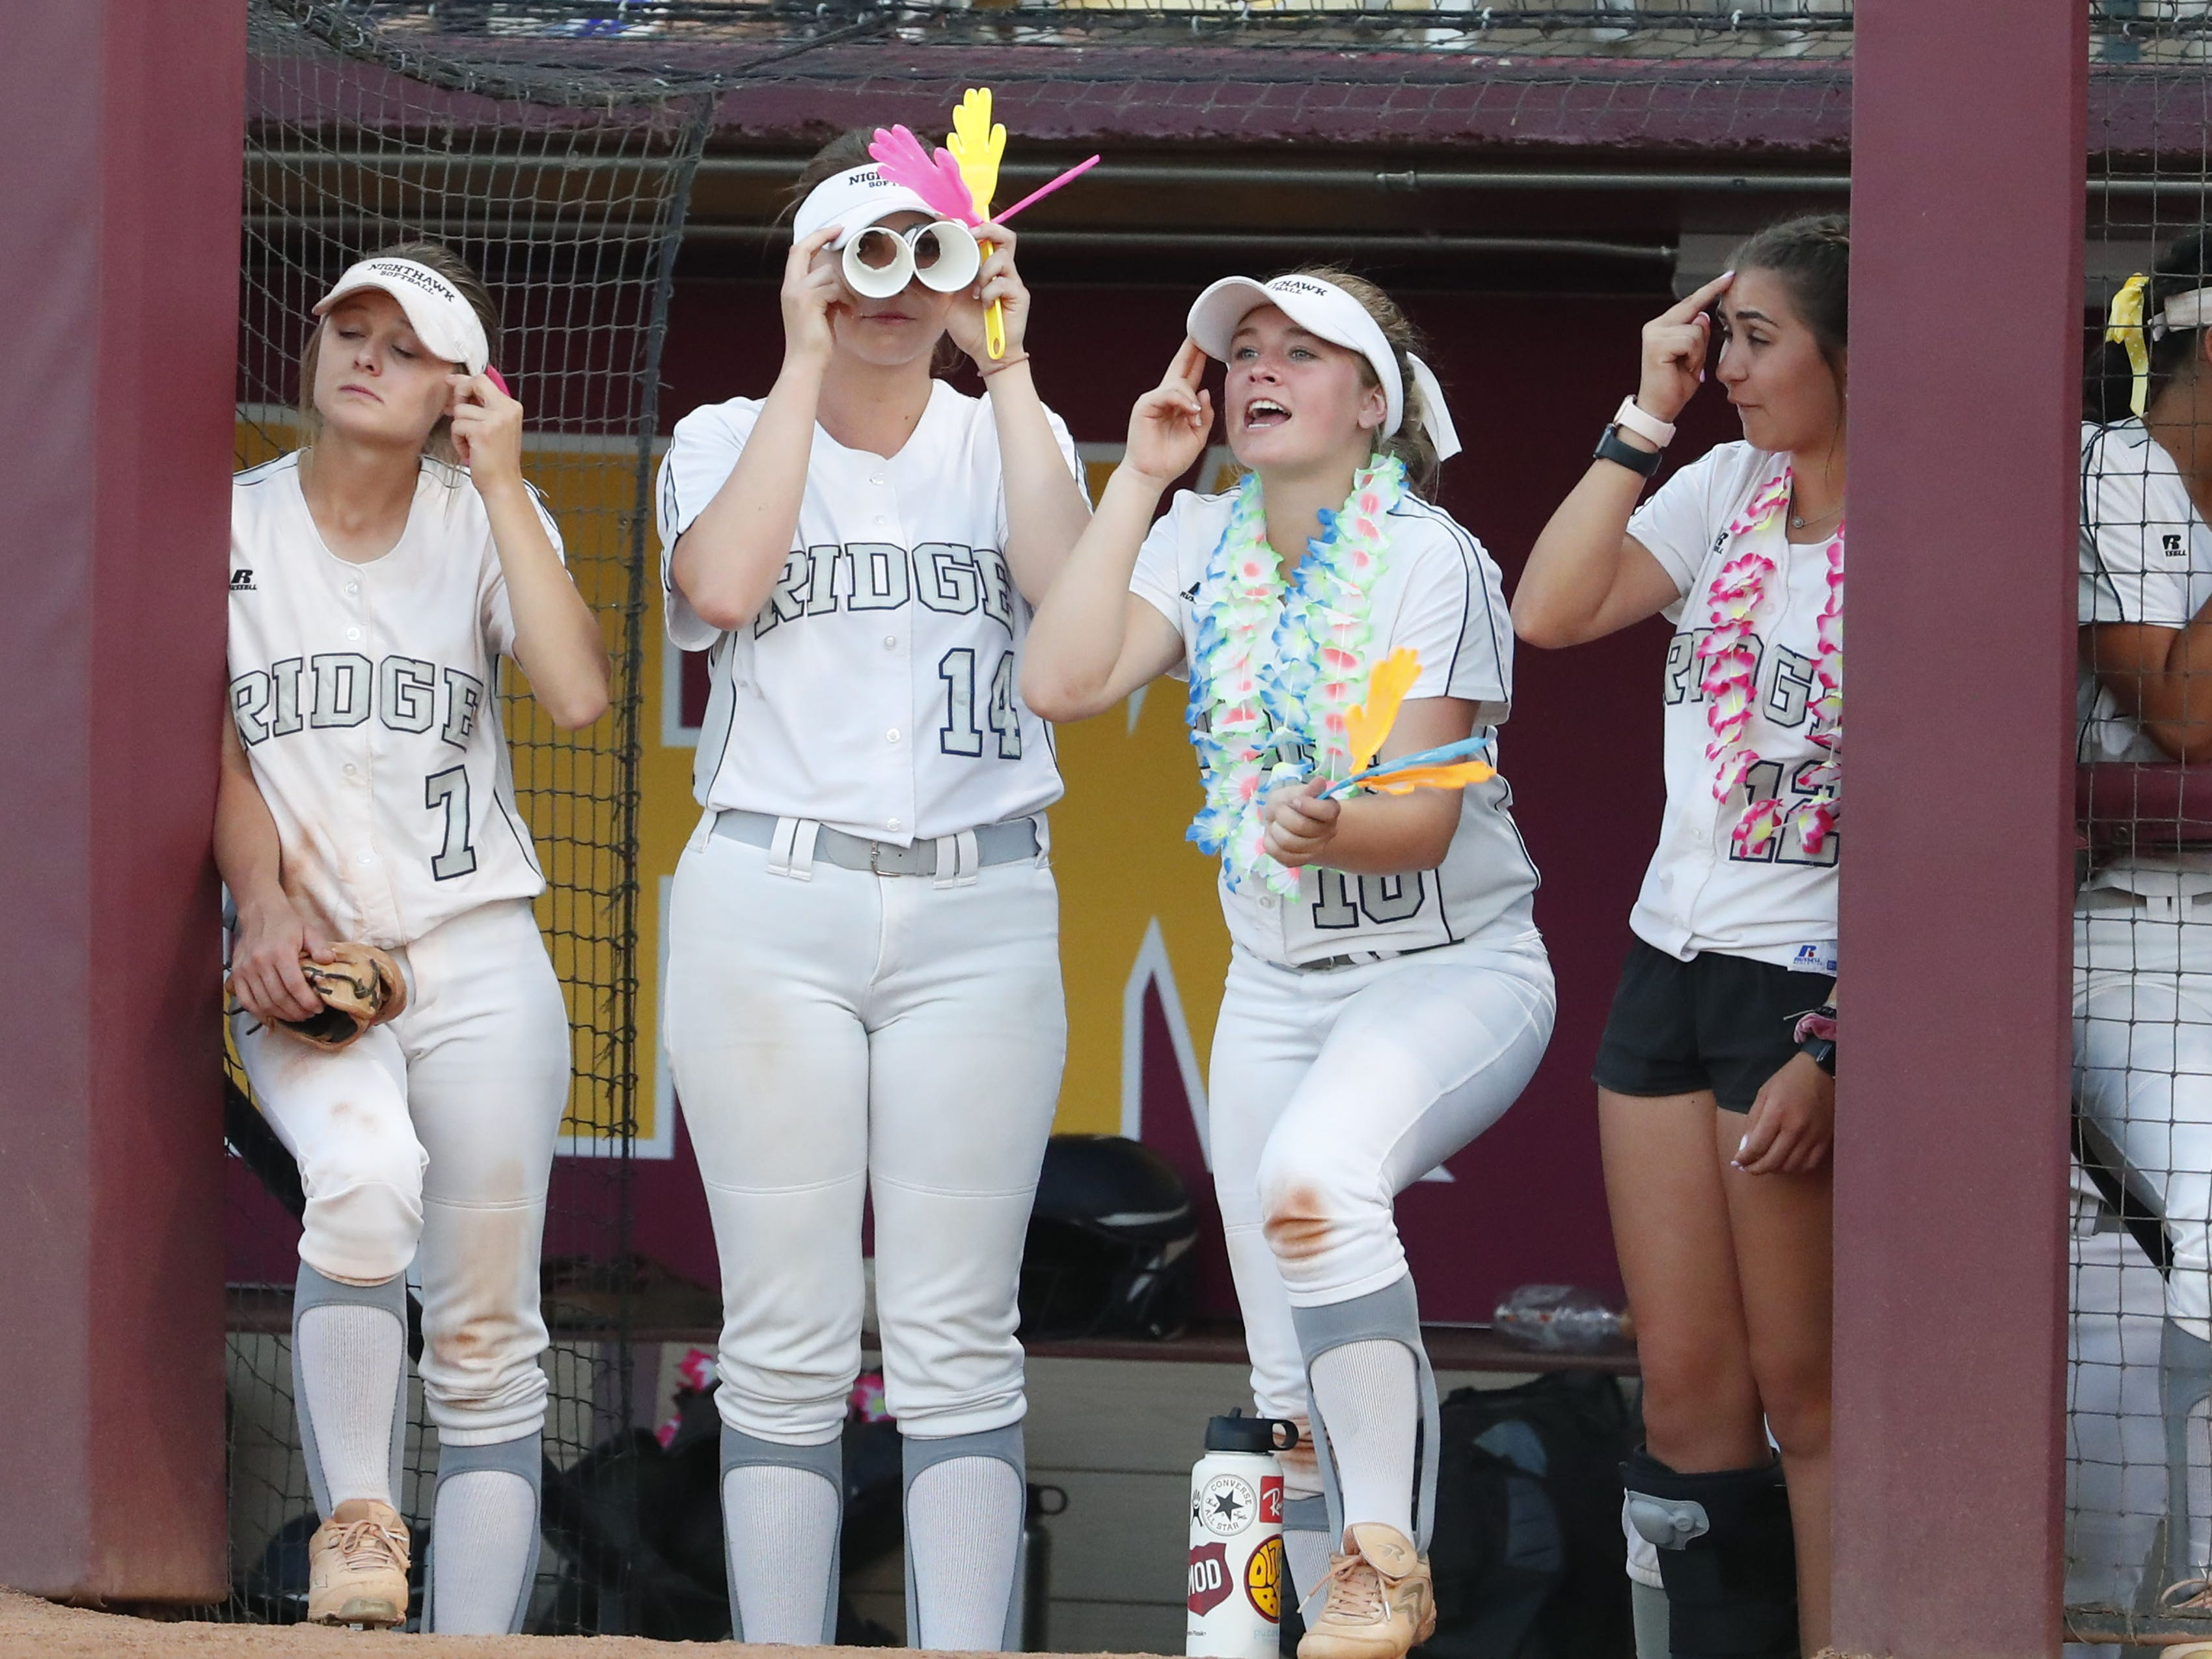 Ironwood Ridge players cheer for their teammates against Centennial during the 5A State Softball Championship in Tempe, Ariz. May 13, 2019.